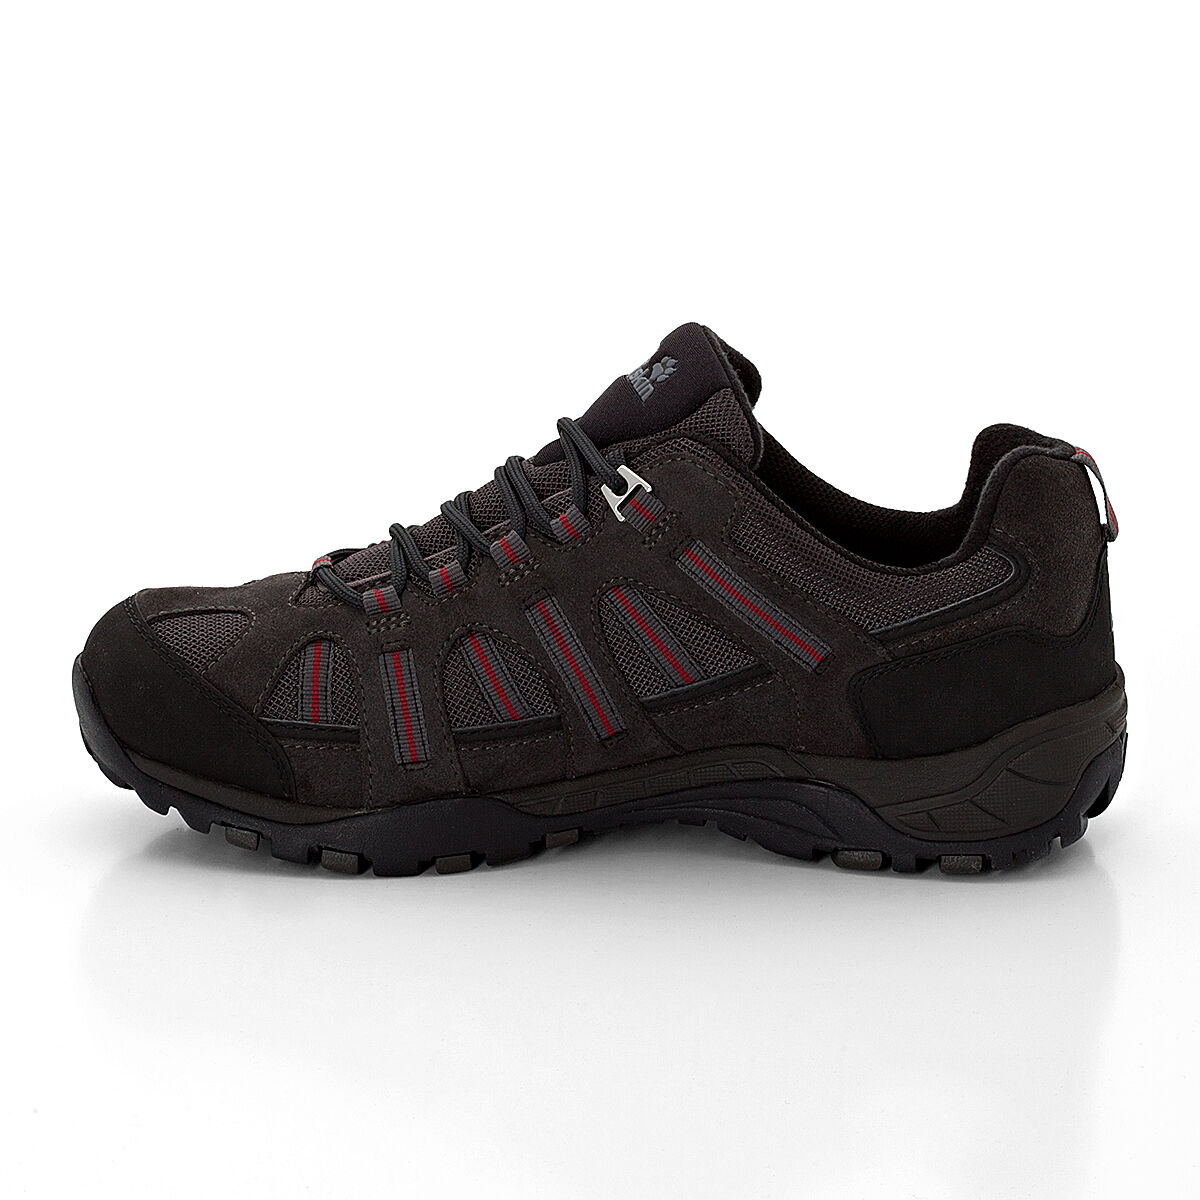 new style 94a6e ca306 Herren Texapore Trailschuh Falcon Low, anthrazit/rot, 44